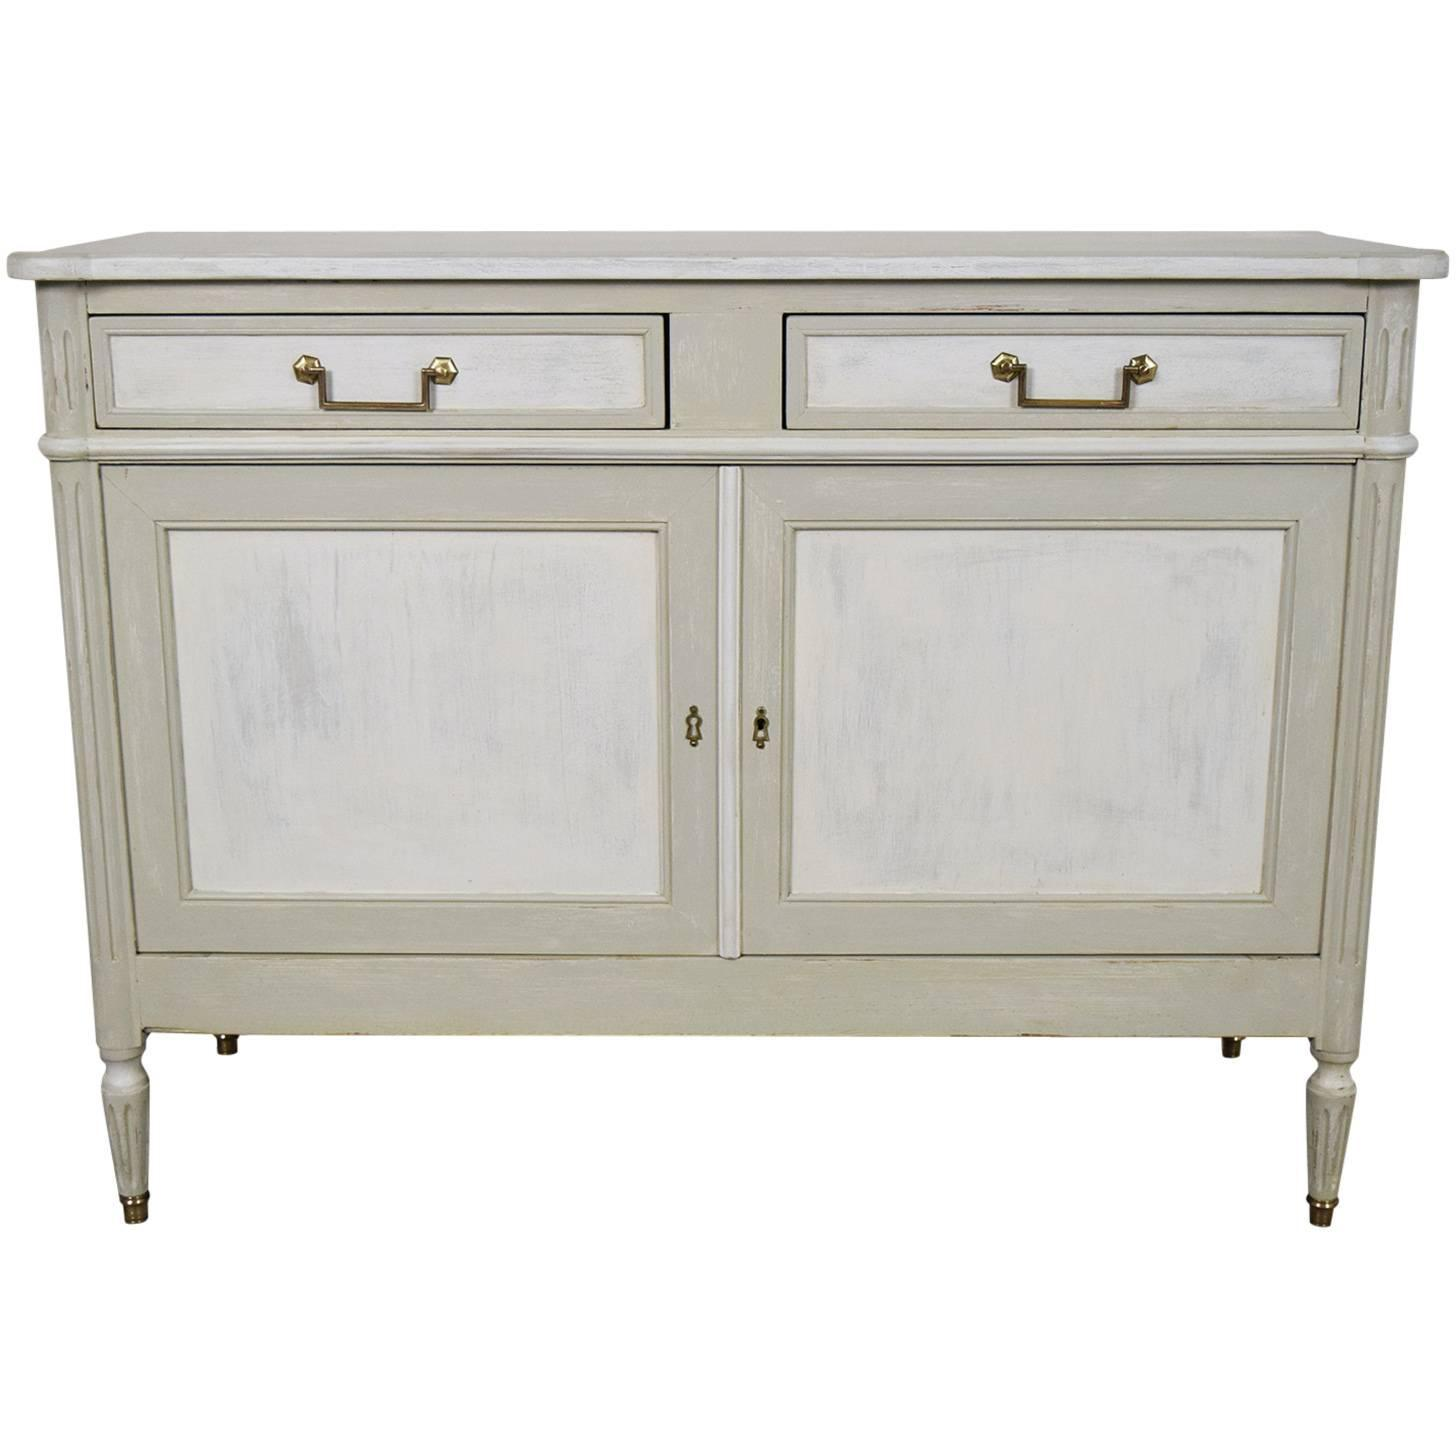 antique french louis xvi painted buffet or sideboard at 1stdibs. Black Bedroom Furniture Sets. Home Design Ideas